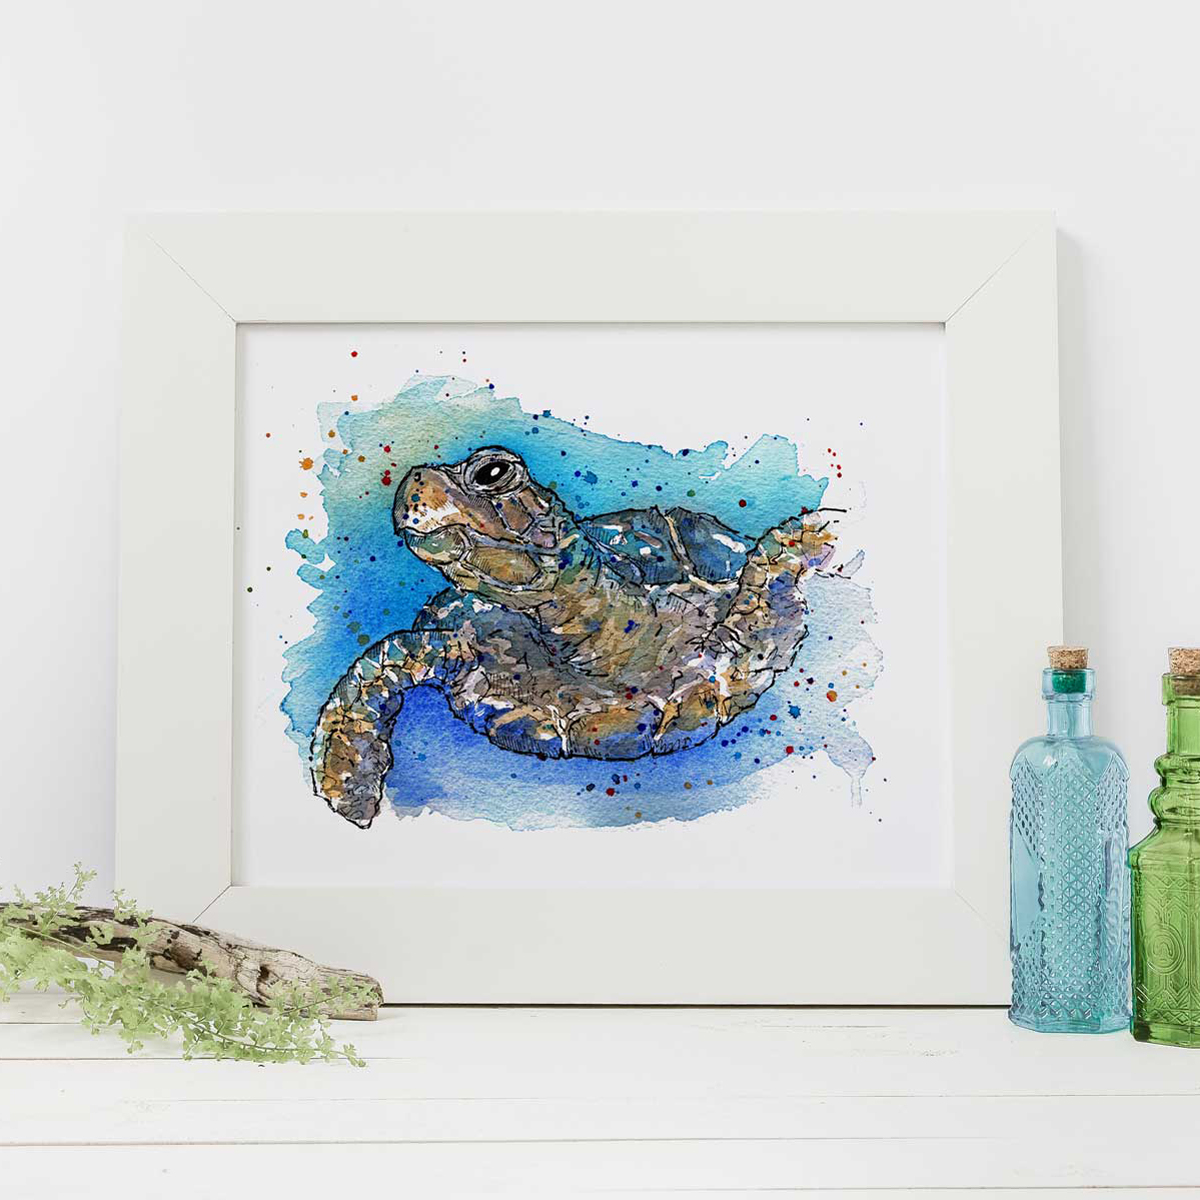 Shell Yeah Print Handmade Prints And Greeting Cards In Devon Cornwall